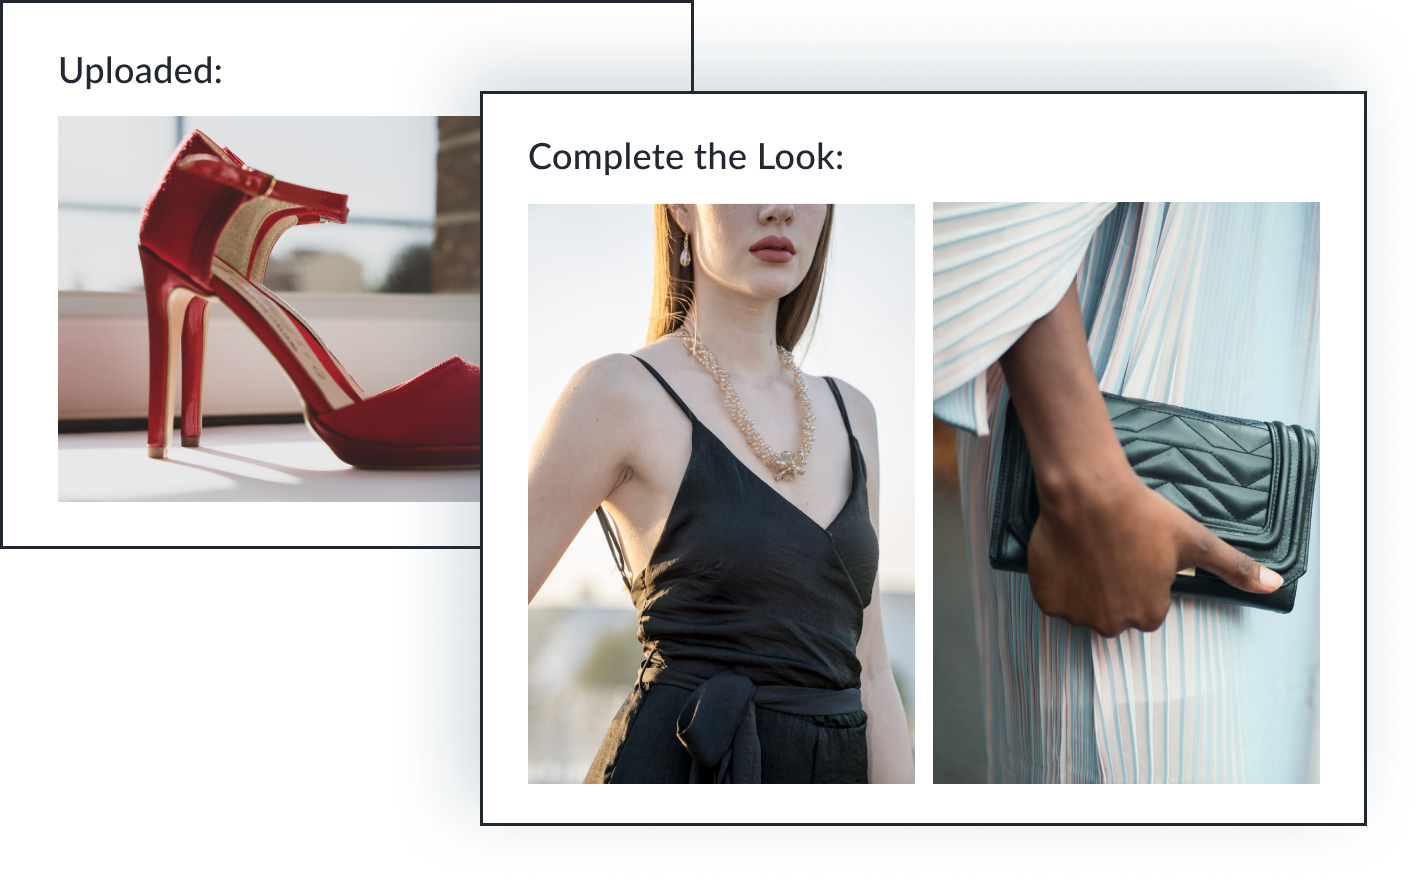 An image of a pair of red heels are uploaded. The AI stylist recommends a black camisole and black quilted clutch to complete the look.